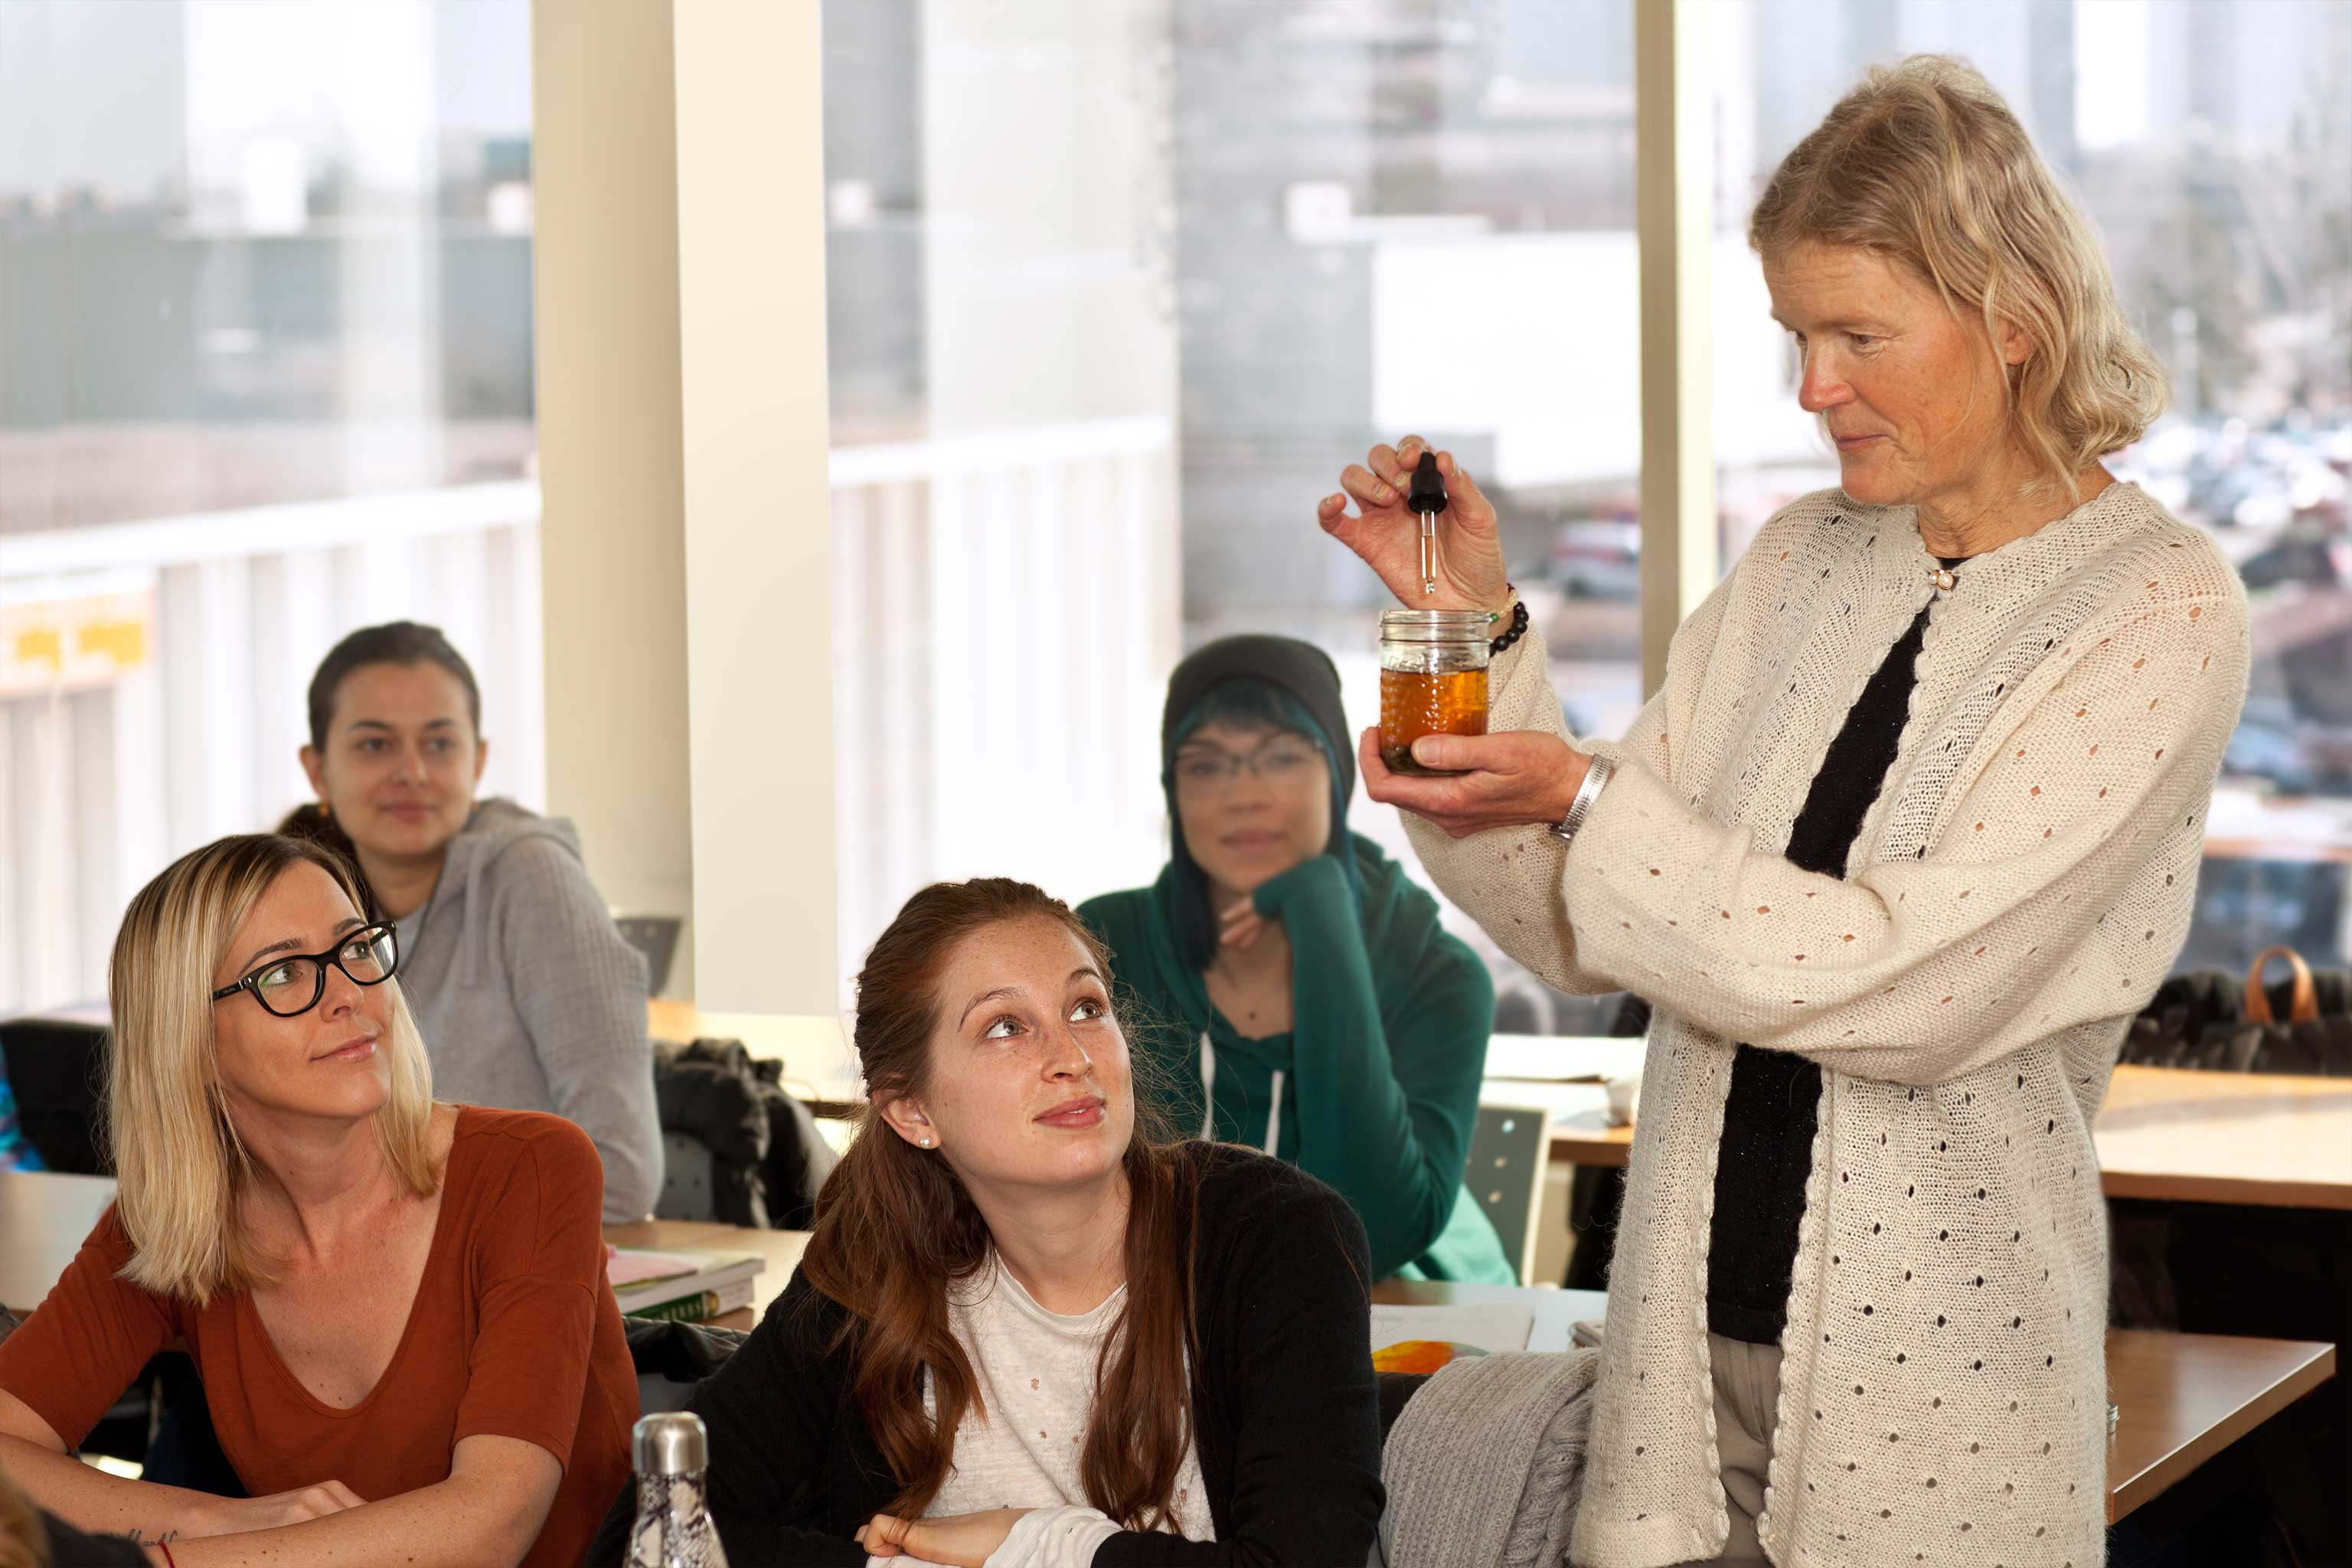 An IHN instructor holding a jar of liquid and an eyedropper teaches students in a classroom.